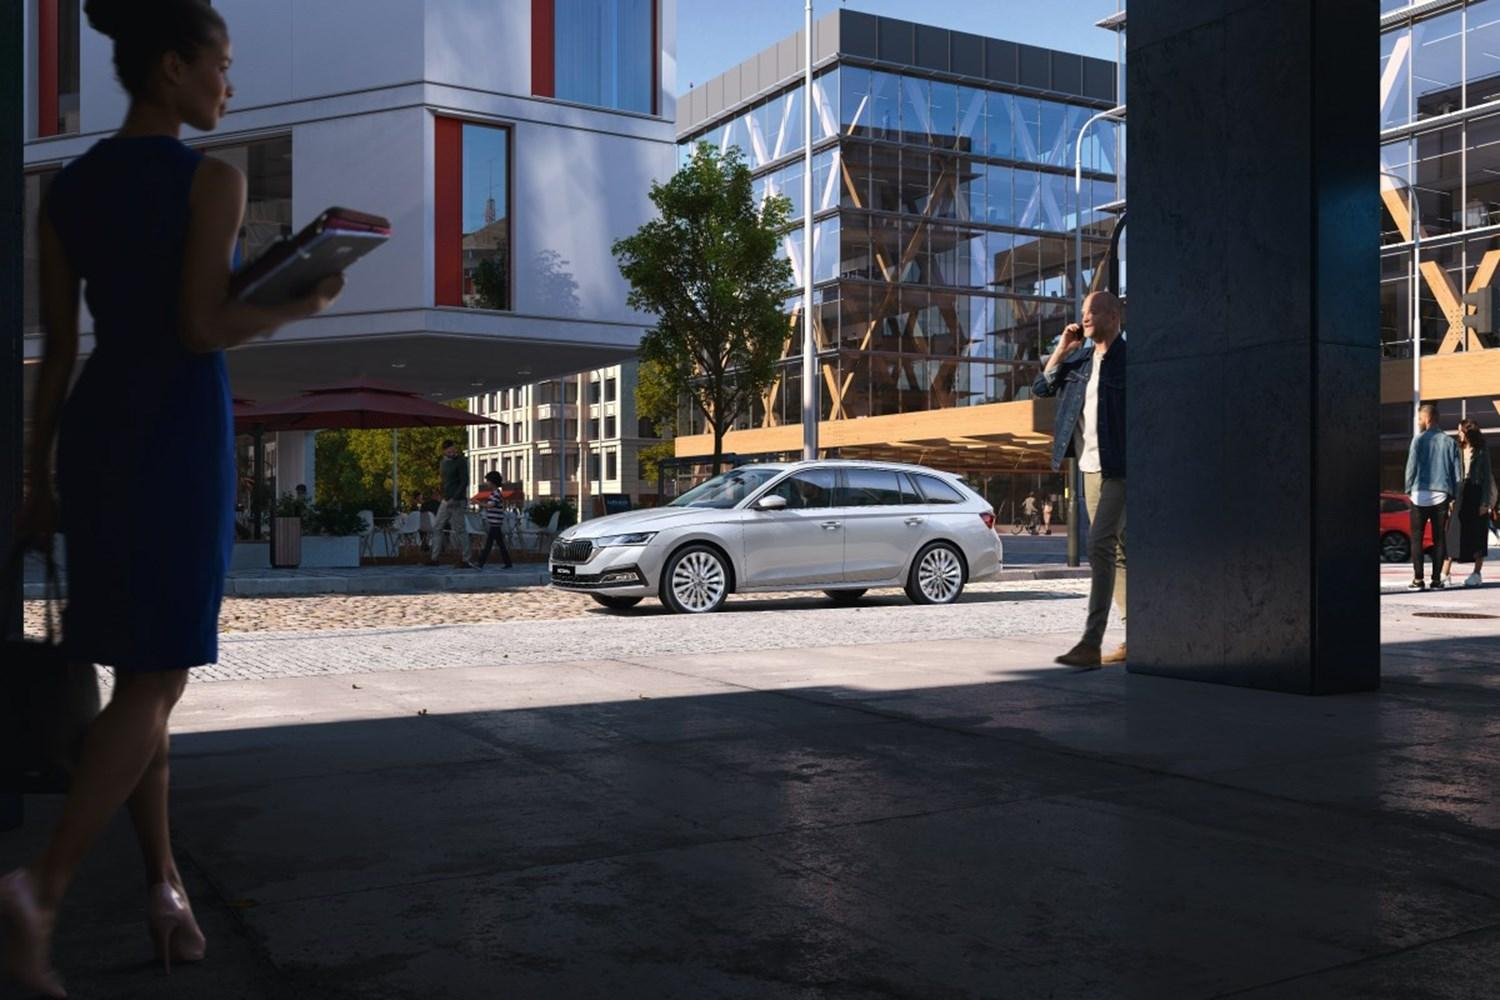 Silver Skoda Superb Estate among modern buildings